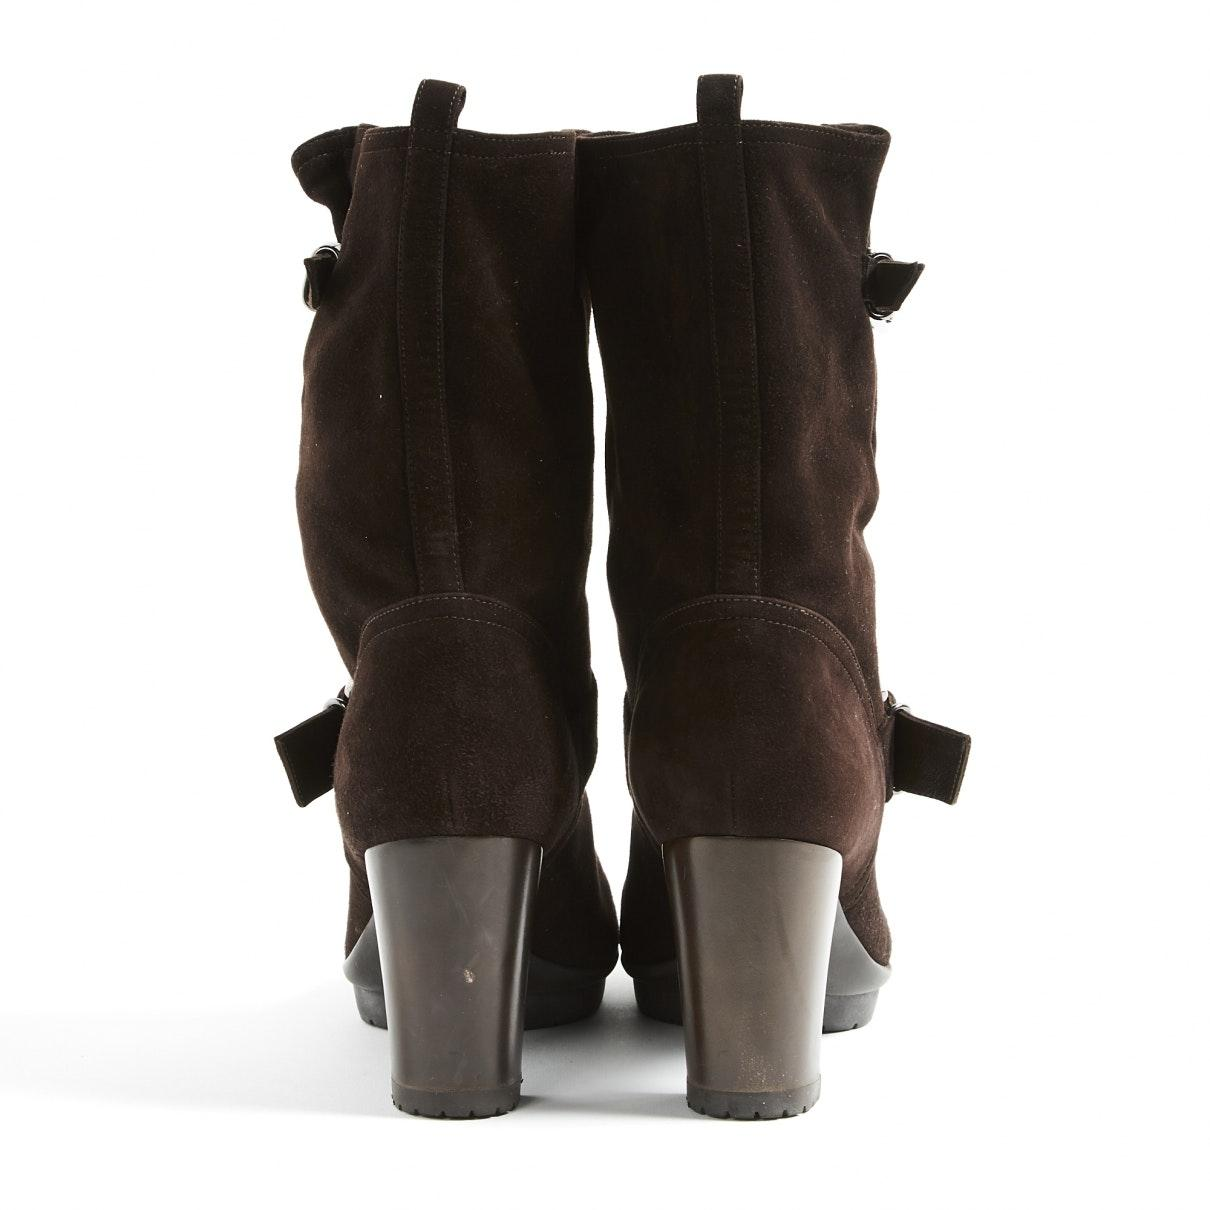 Gianvito Rossi Brown Suede Boots